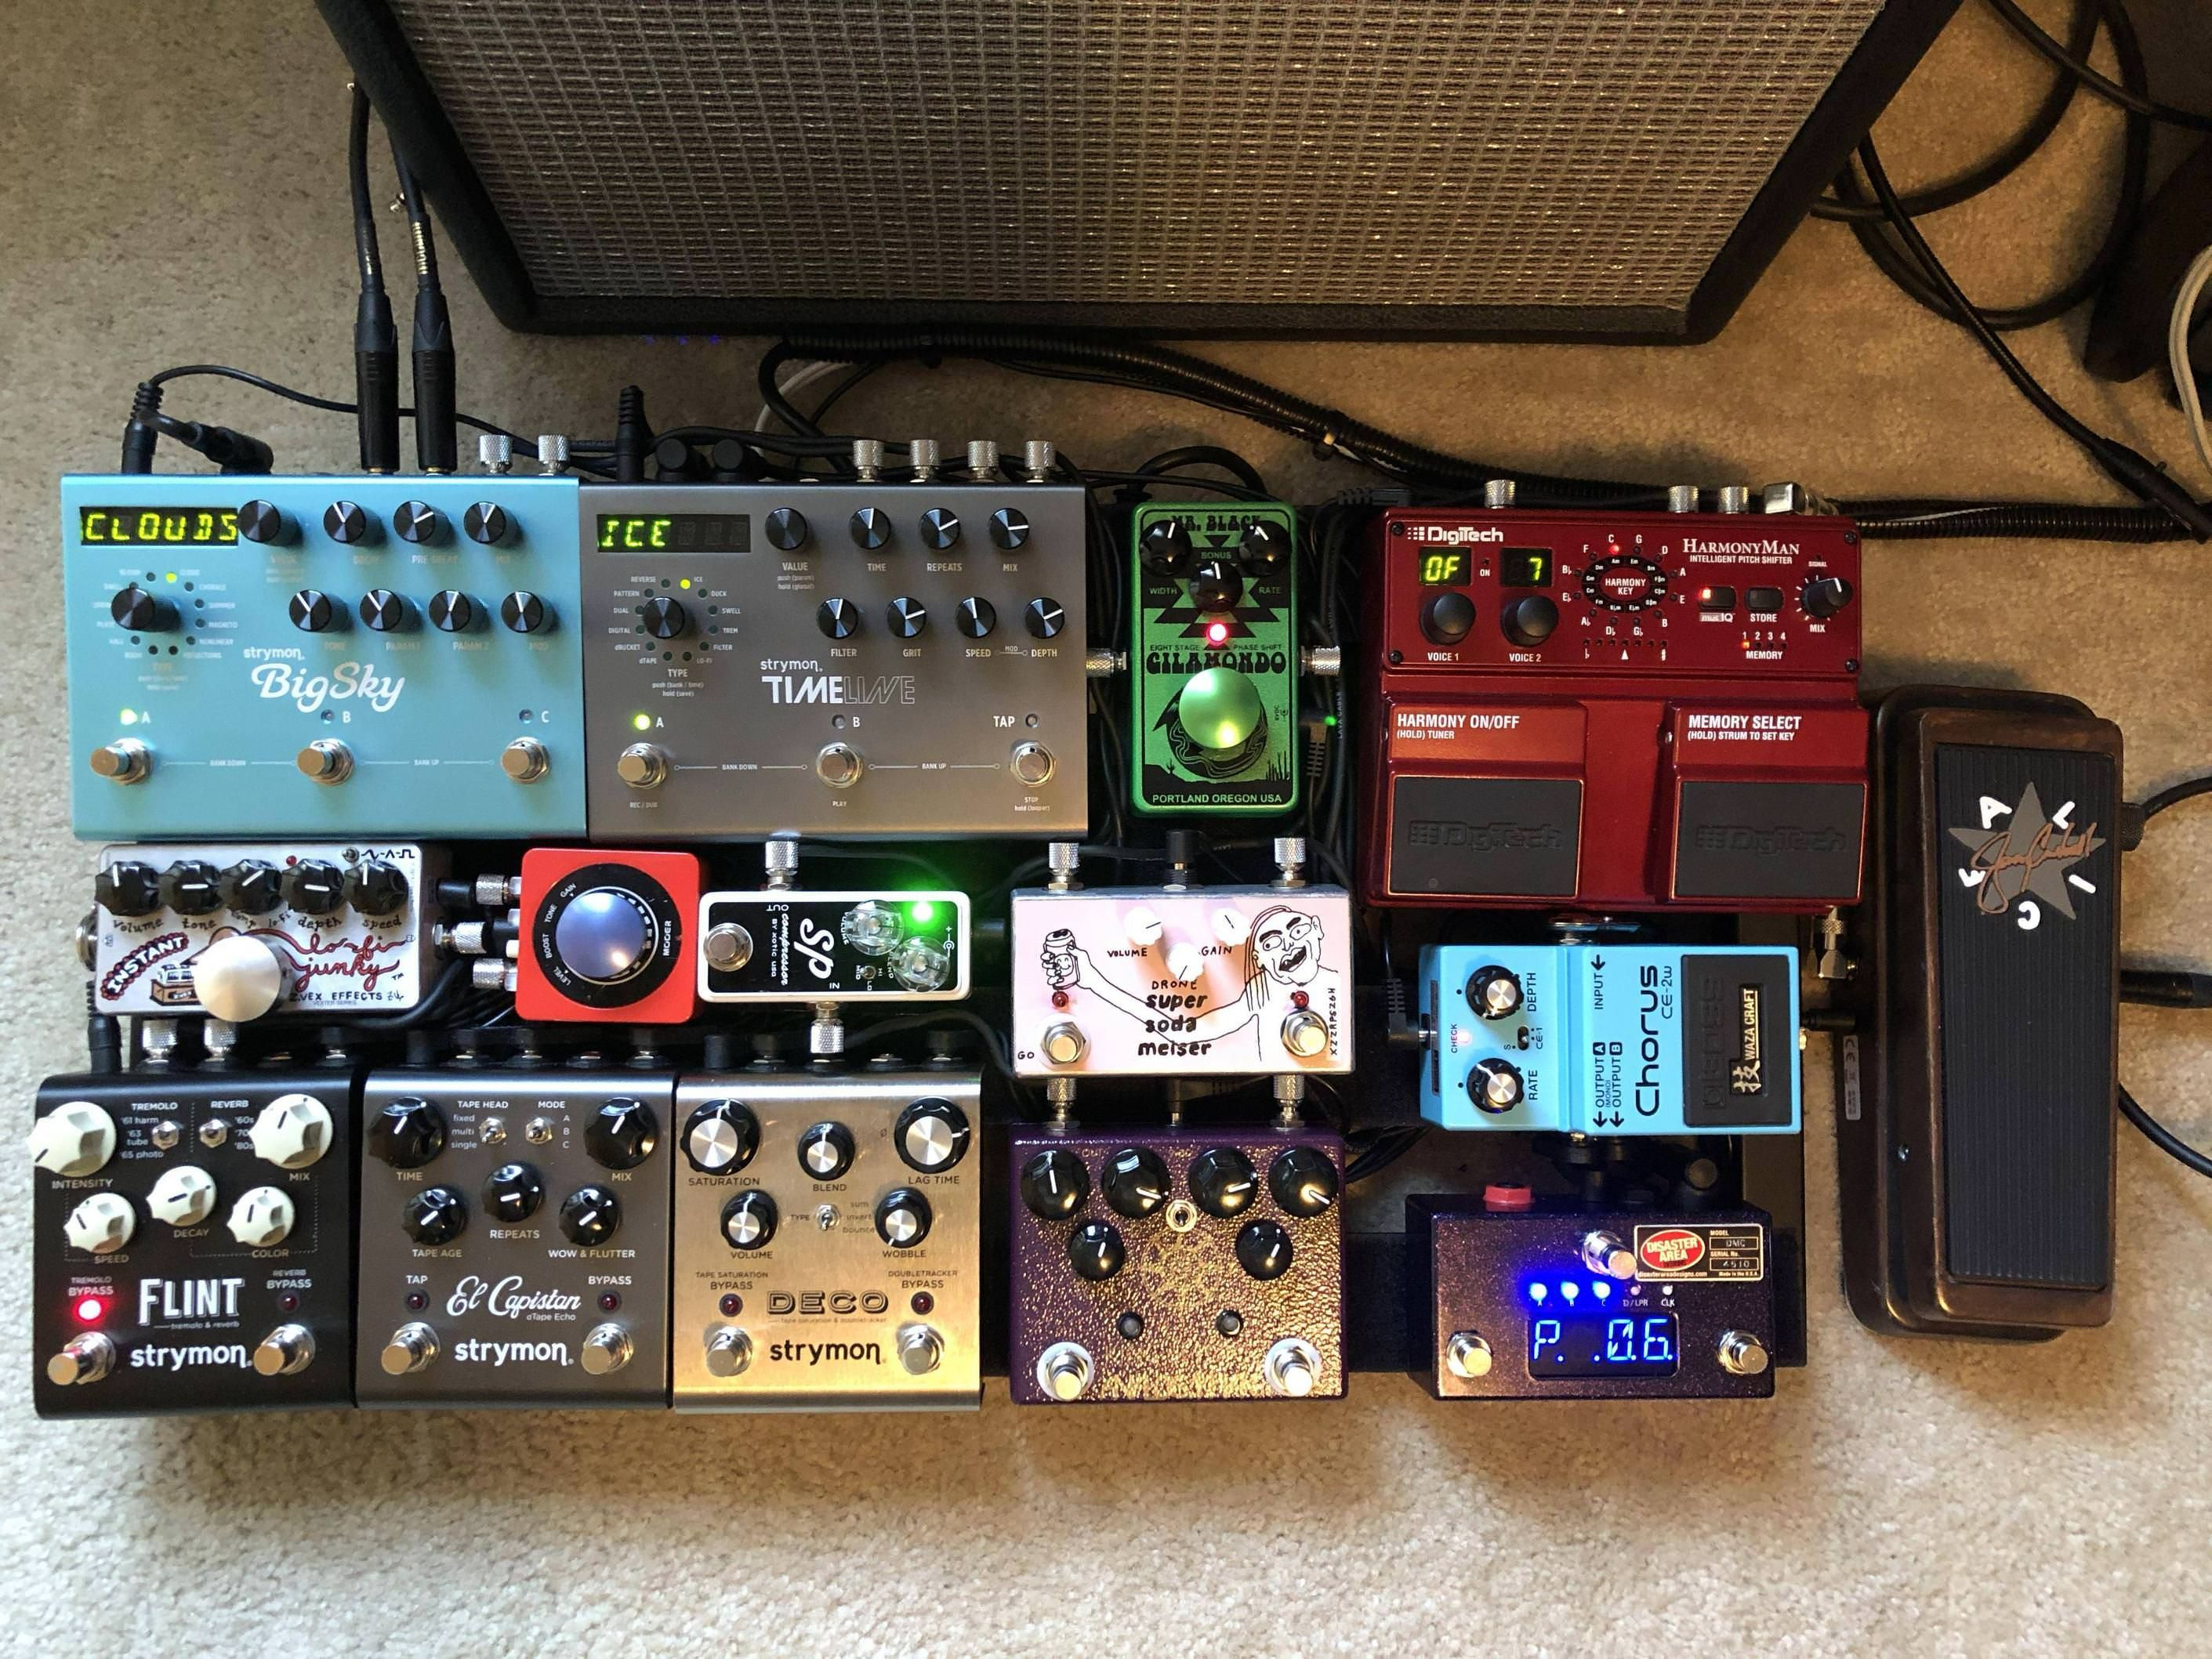 The Pedalboard Is Donezo This Is Version 16 And I Truly Couldn T Be Happier Pedalboard Guitar Pedals Guitar Rig